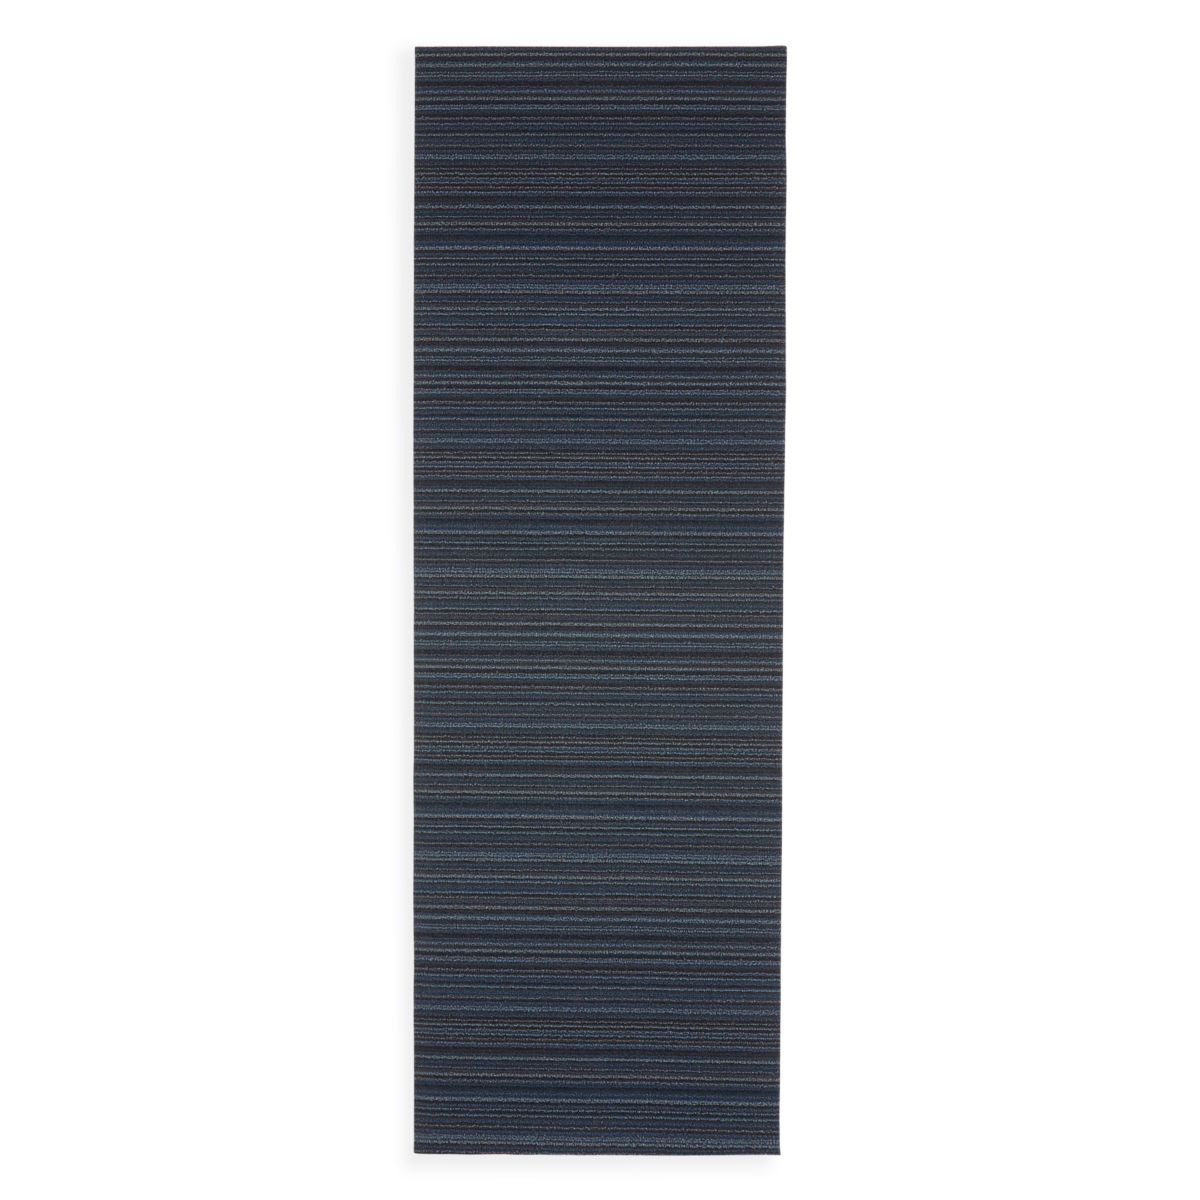 "Stripe Shag Floor Runner, 24"" X 72"" by Chilewich"